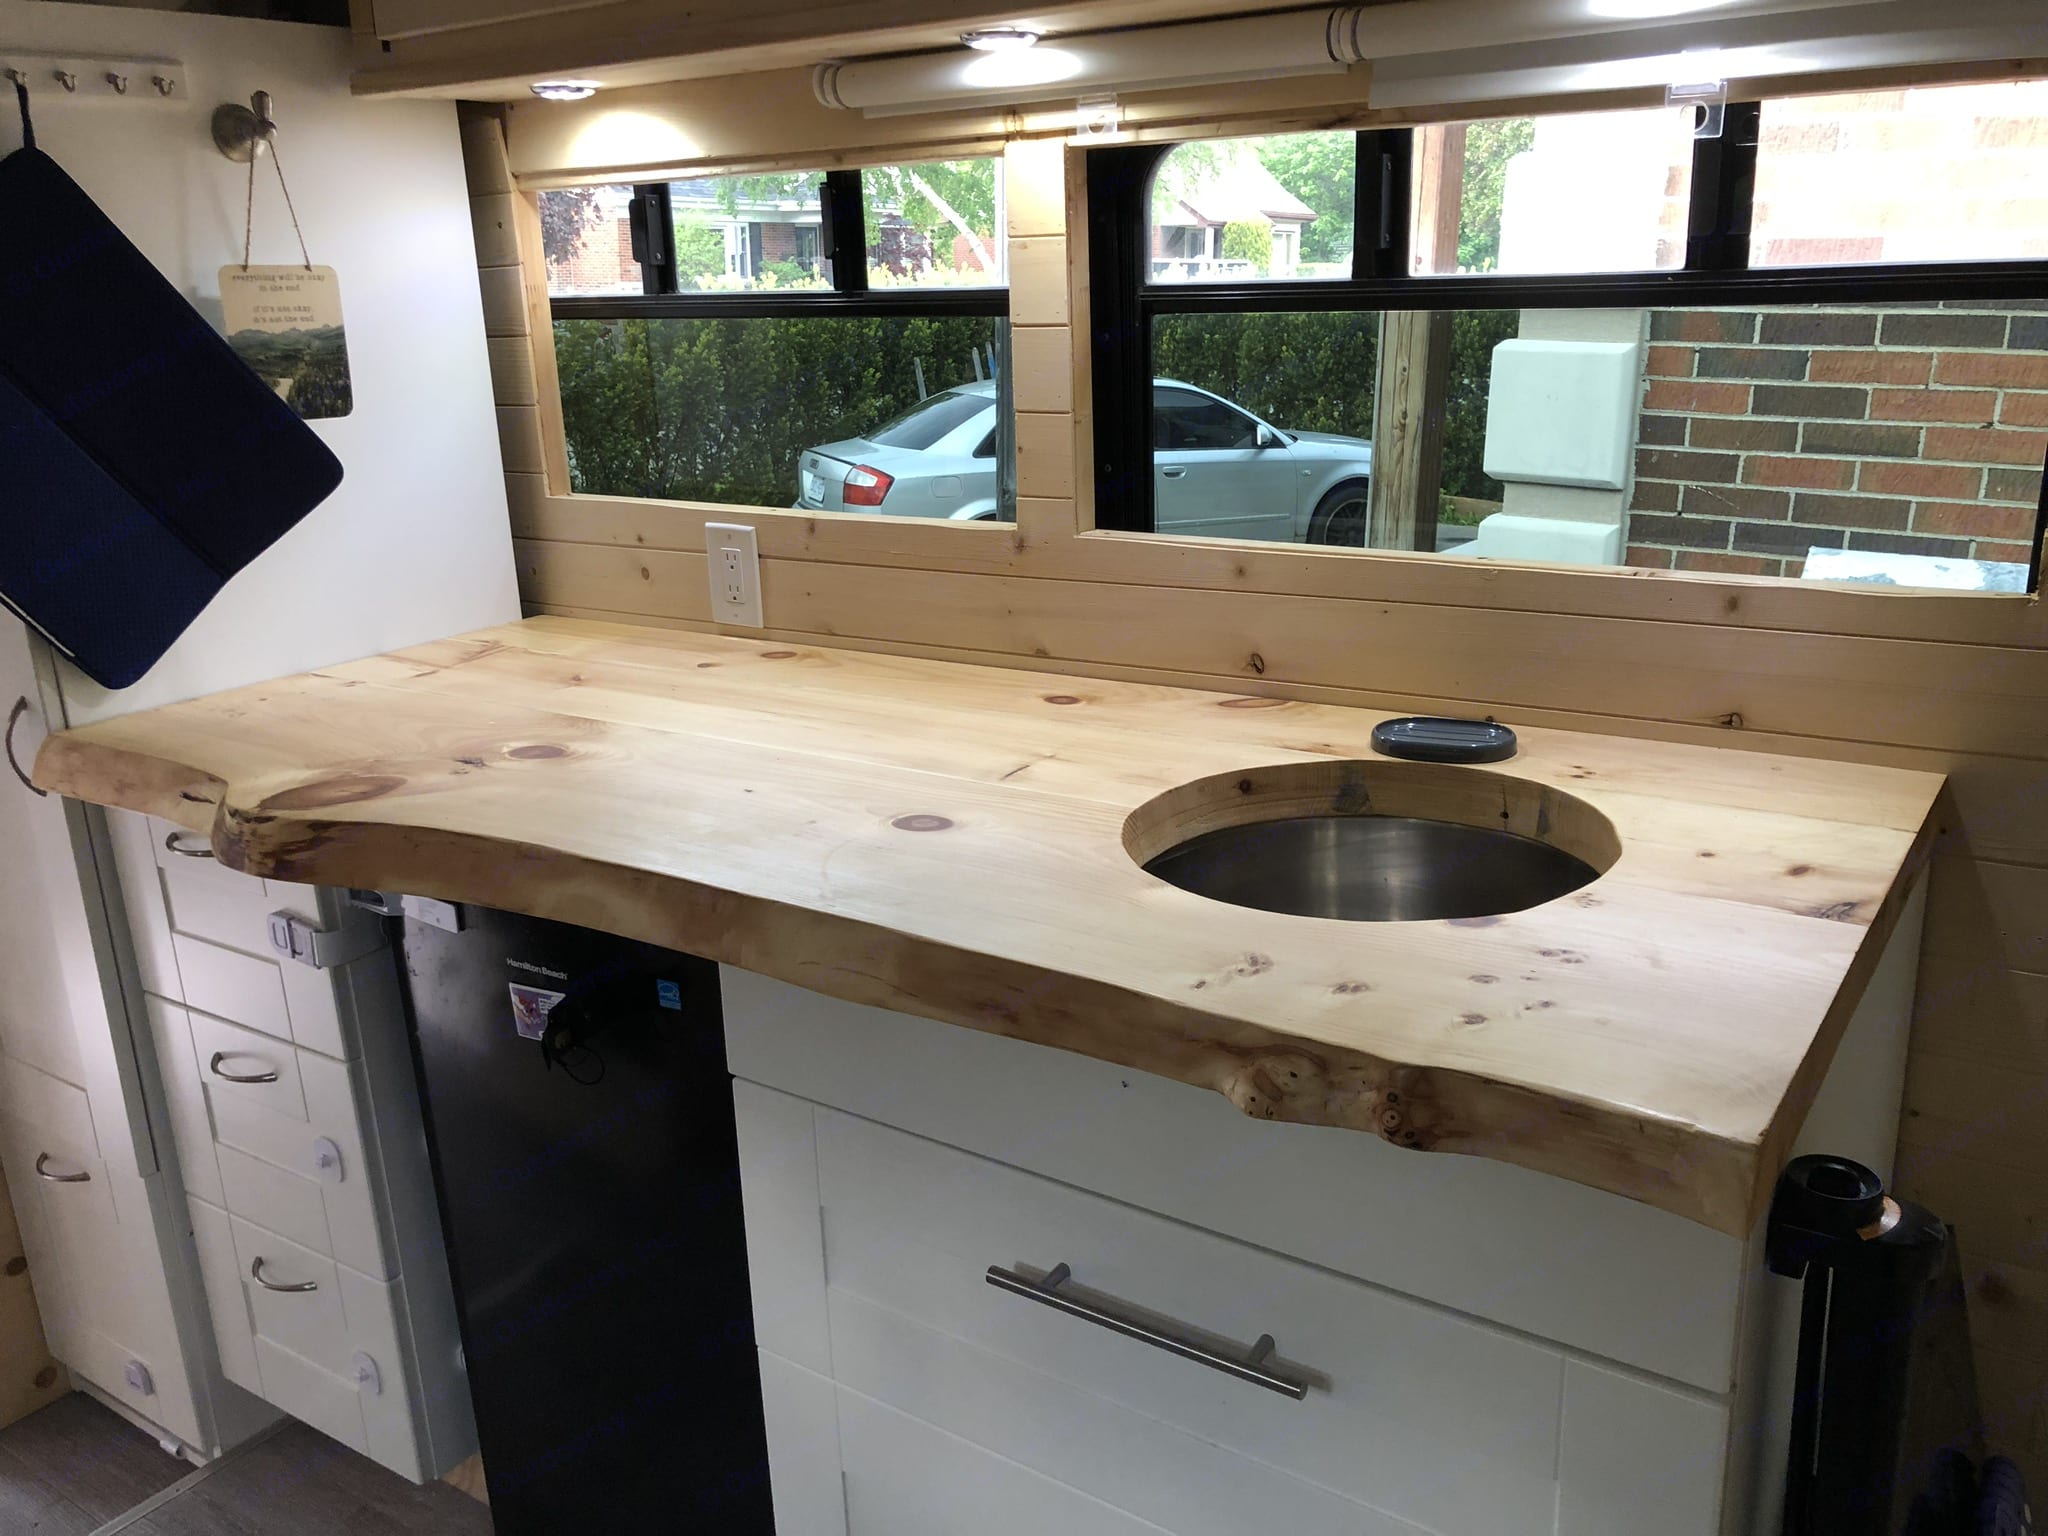 Live edge kitchen countertop perfect for meal prep! Off grid fridge, panty, and plenty of storage.. Custom Other 2019